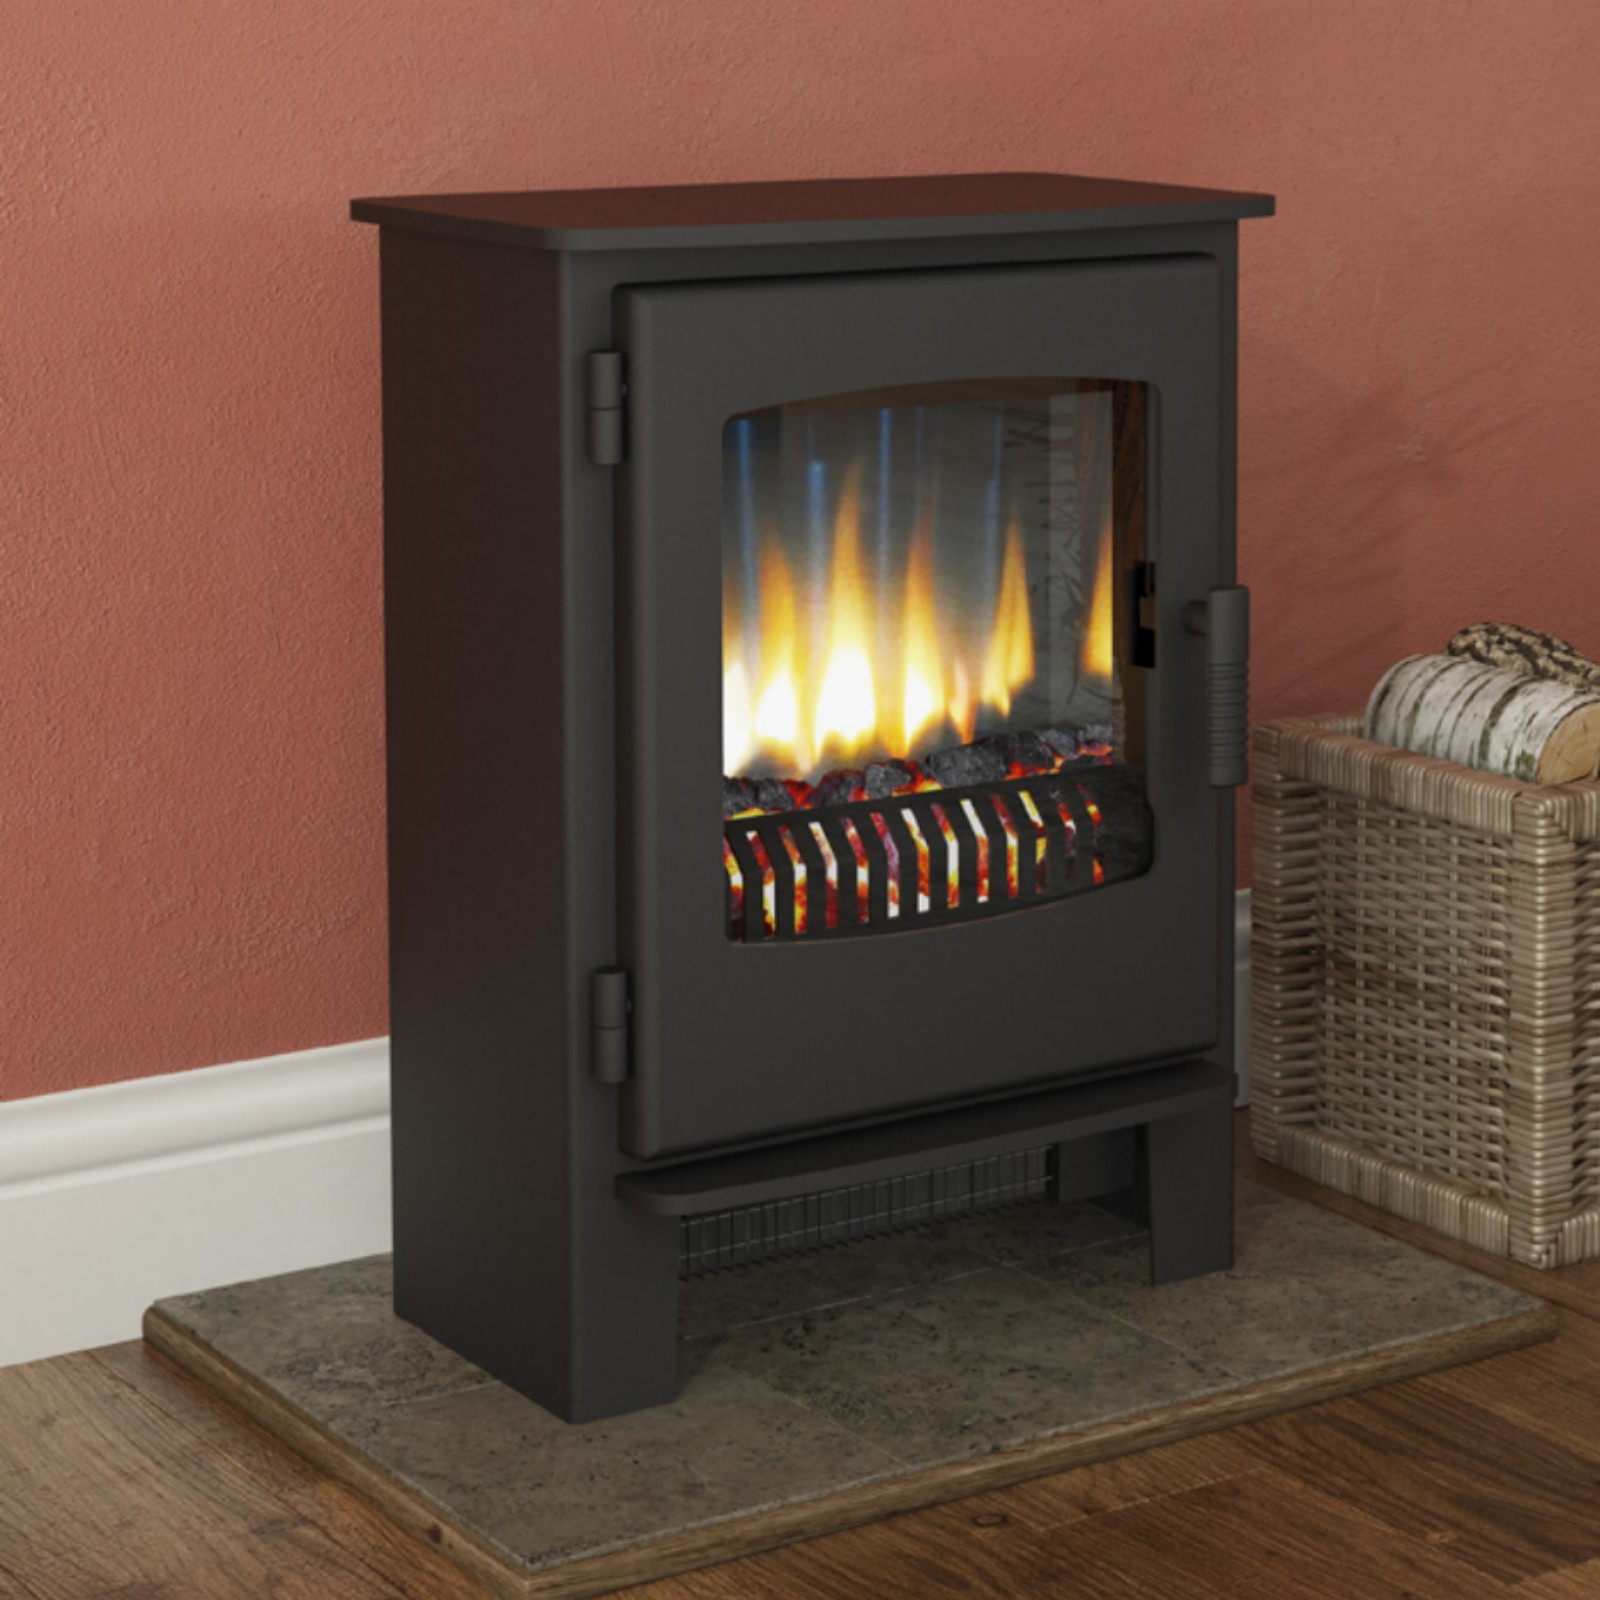 Contemporary Fire Broseley York Grande Stove Free Delivery